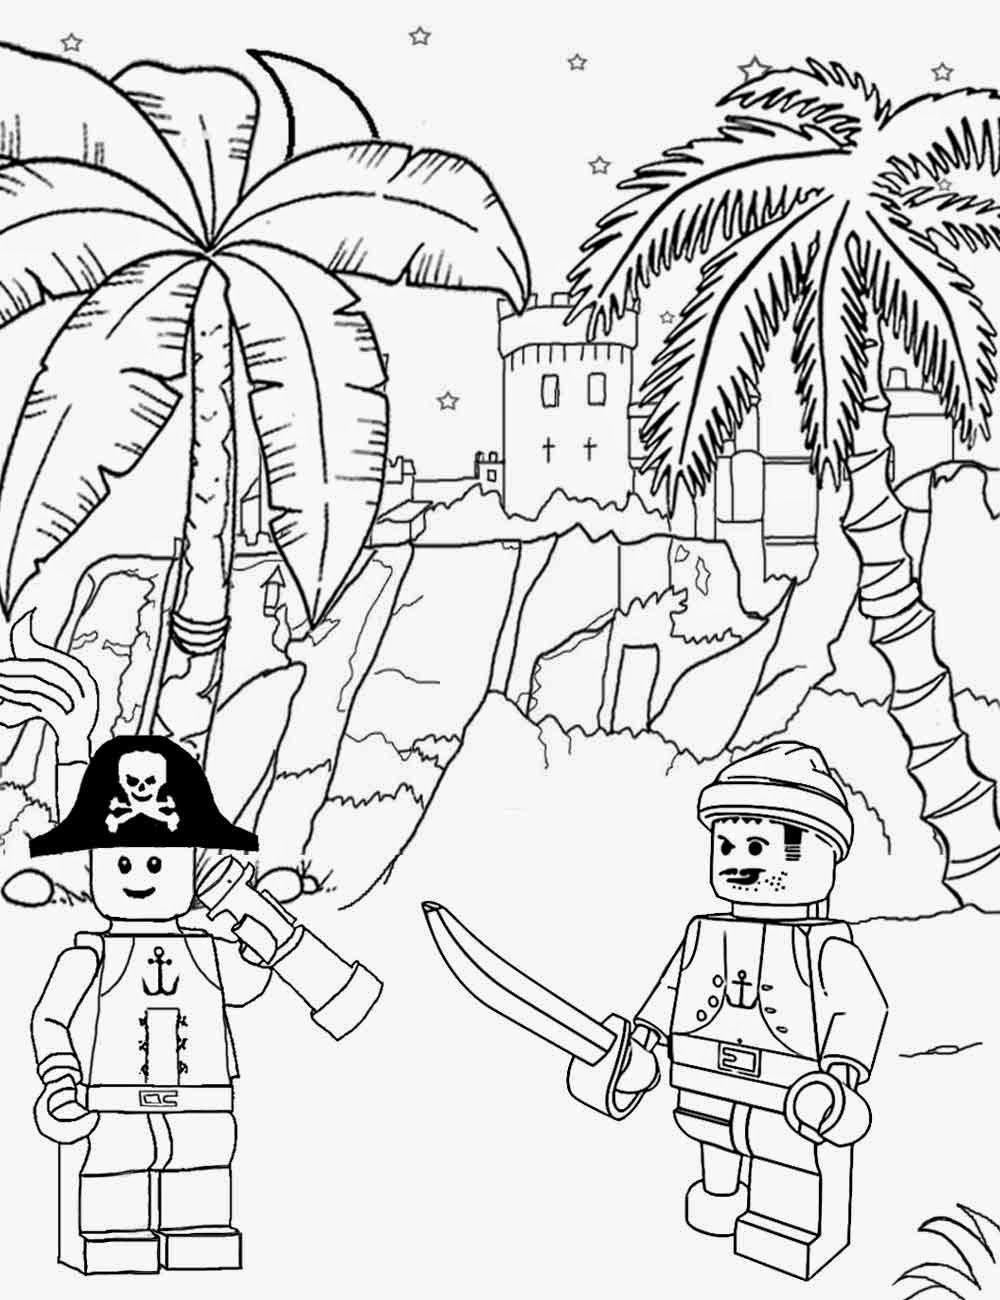 pirate lego coloring pages disney pirates of the caribbean coloring pages long john coloring lego pages pirate